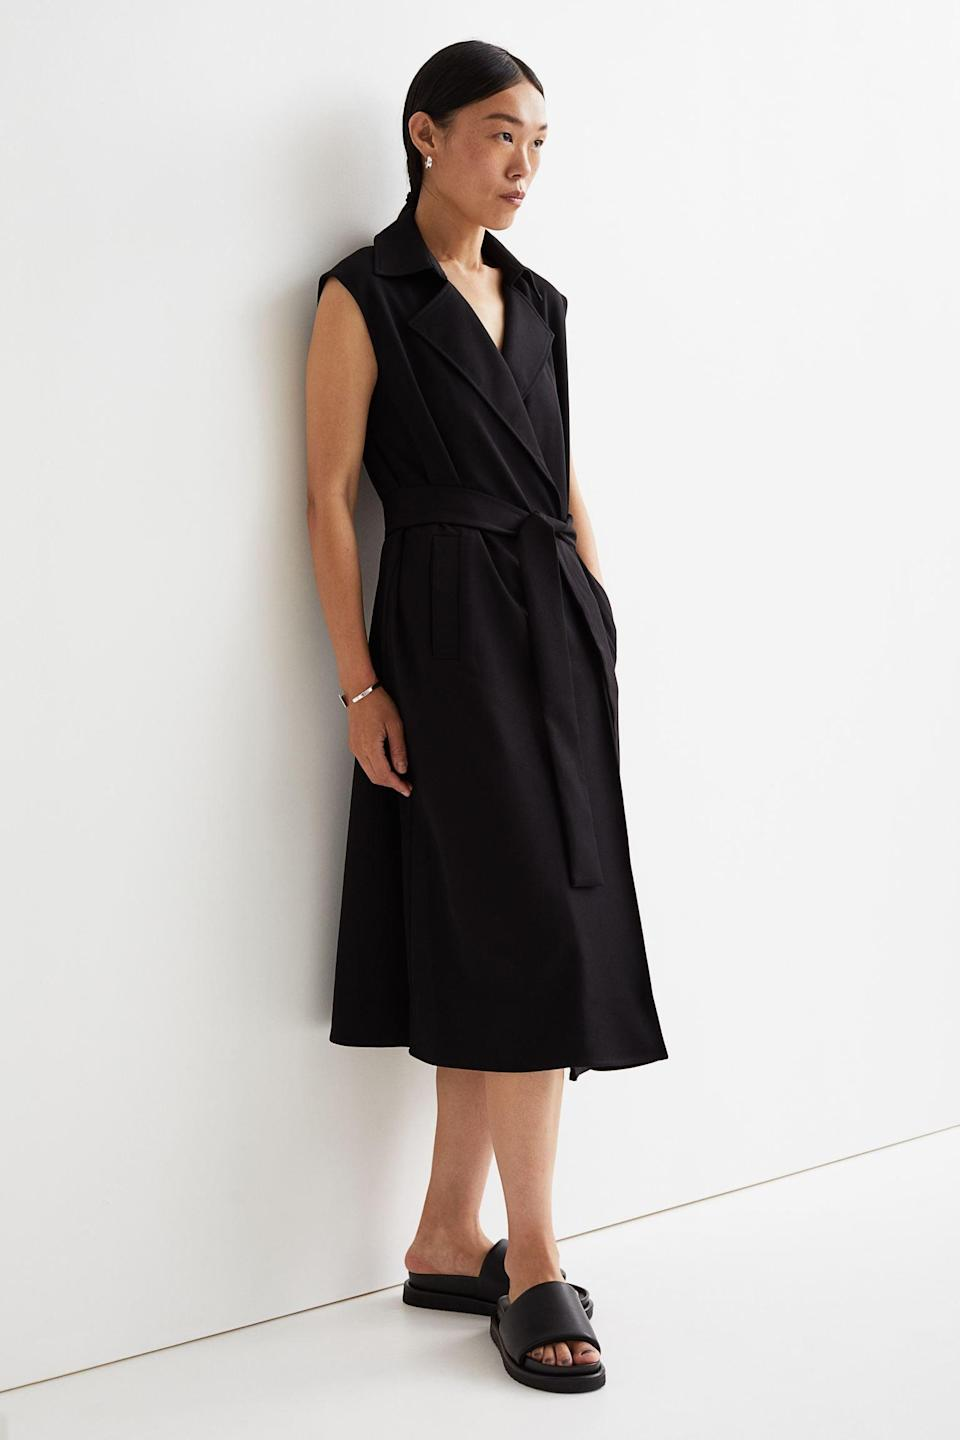 <p>This <span>H&amp;M Knee-length Jacket Dress</span> ($60) also doubles as outerwear so you can totally layer it over a long-sleeve top and jeans. If you're feeling brave on a warmer day though, style it on its own with loafers.</p>